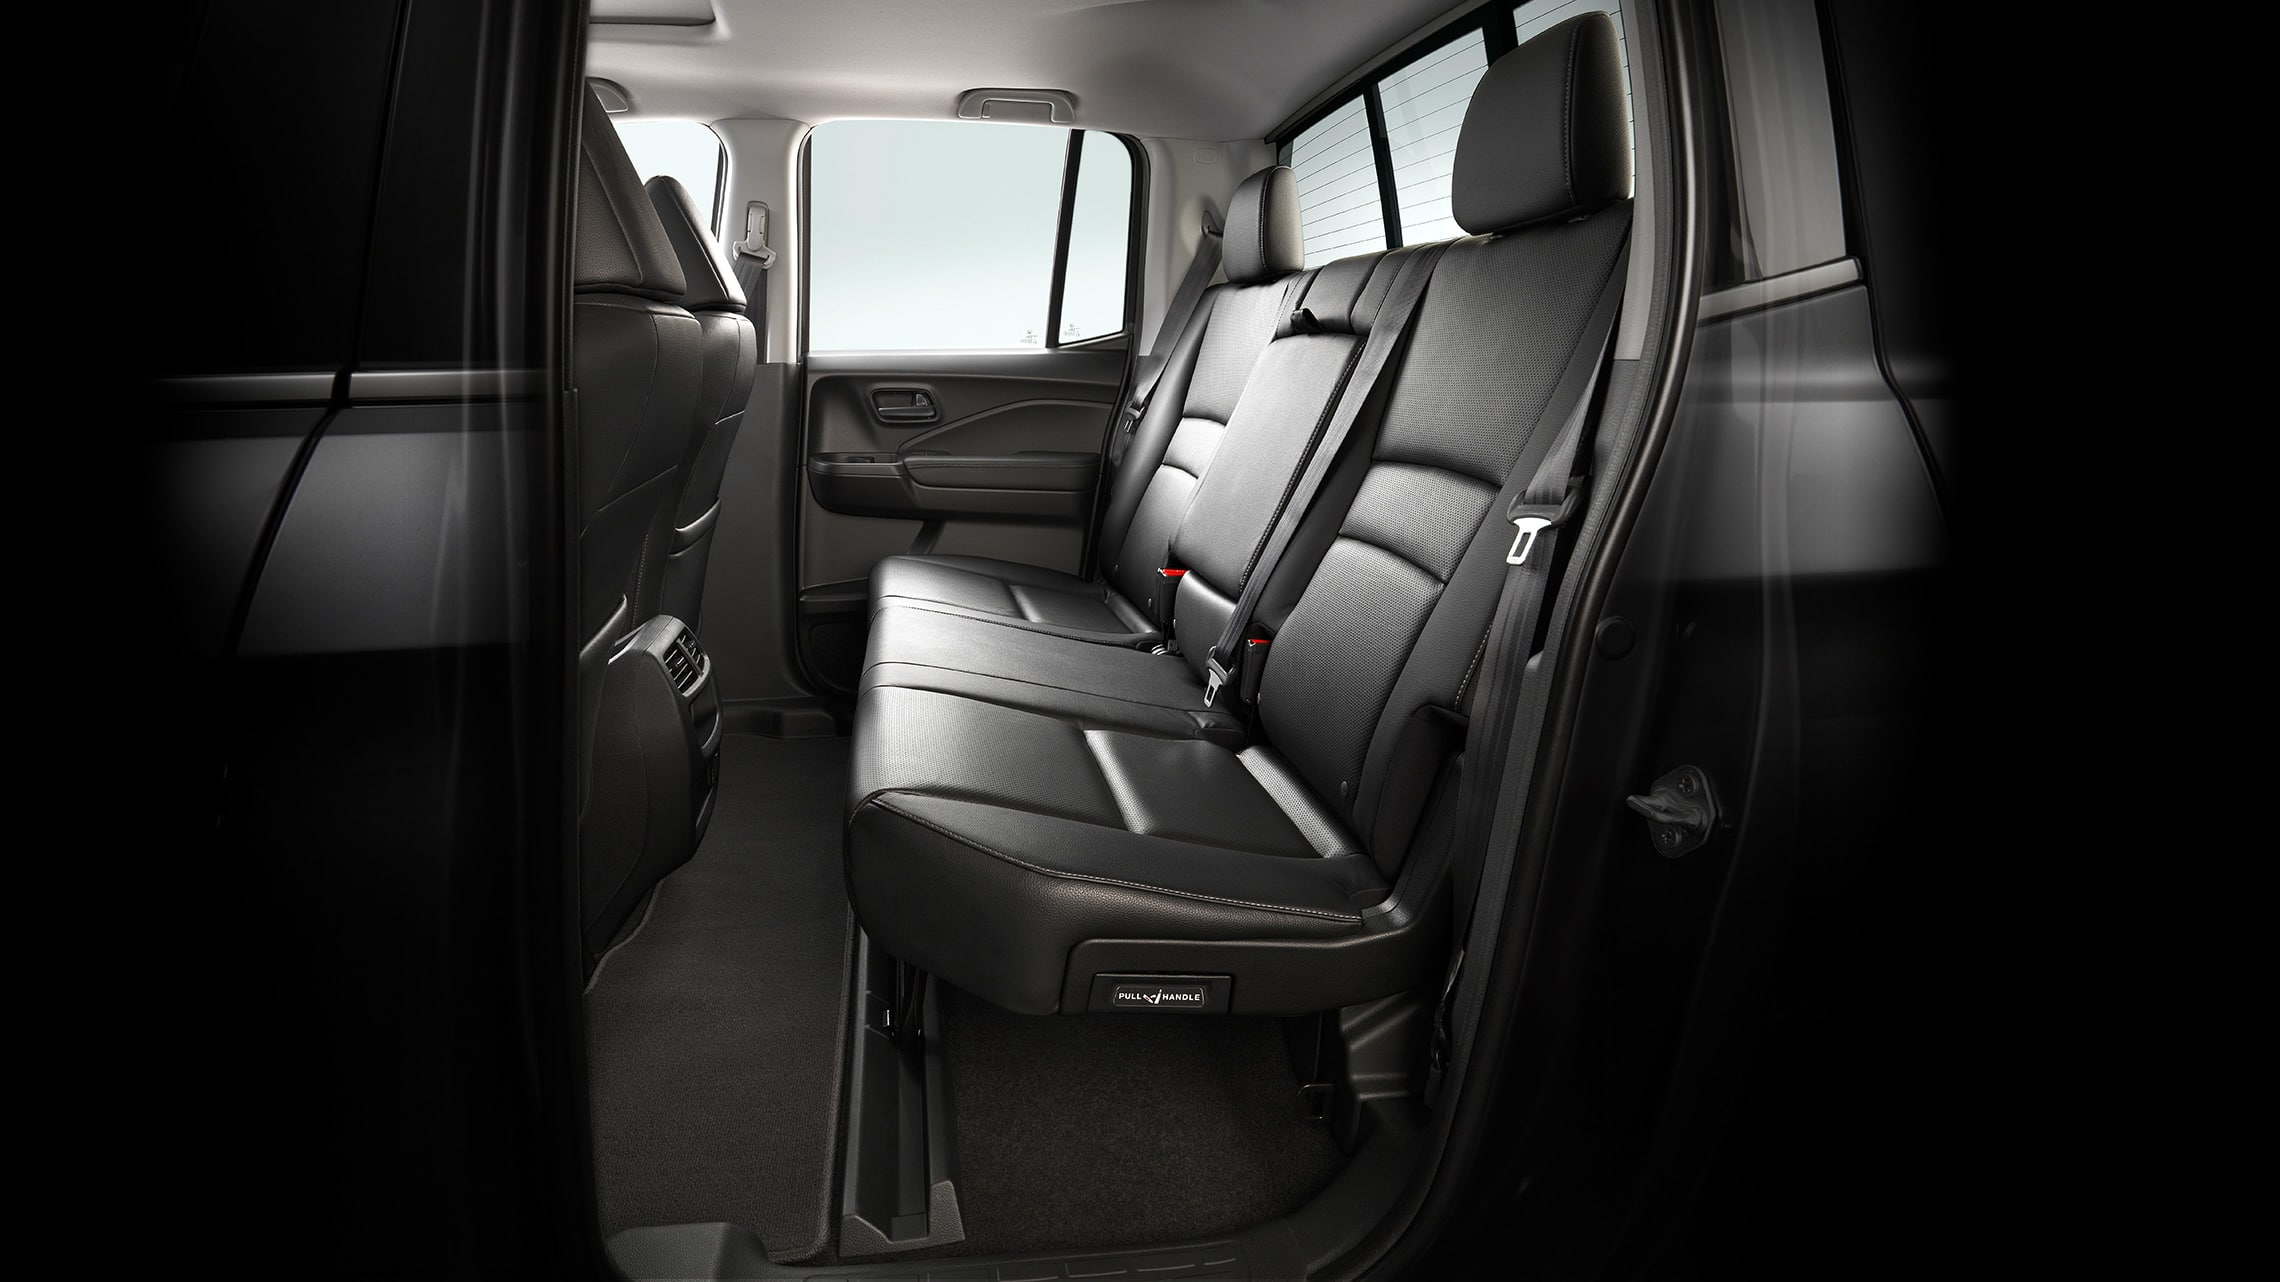 Interior view of the 60/40 split rear seats folded up, storing a bike in the 2020 Honda Ridgeline RTL-E with Gray Leather.